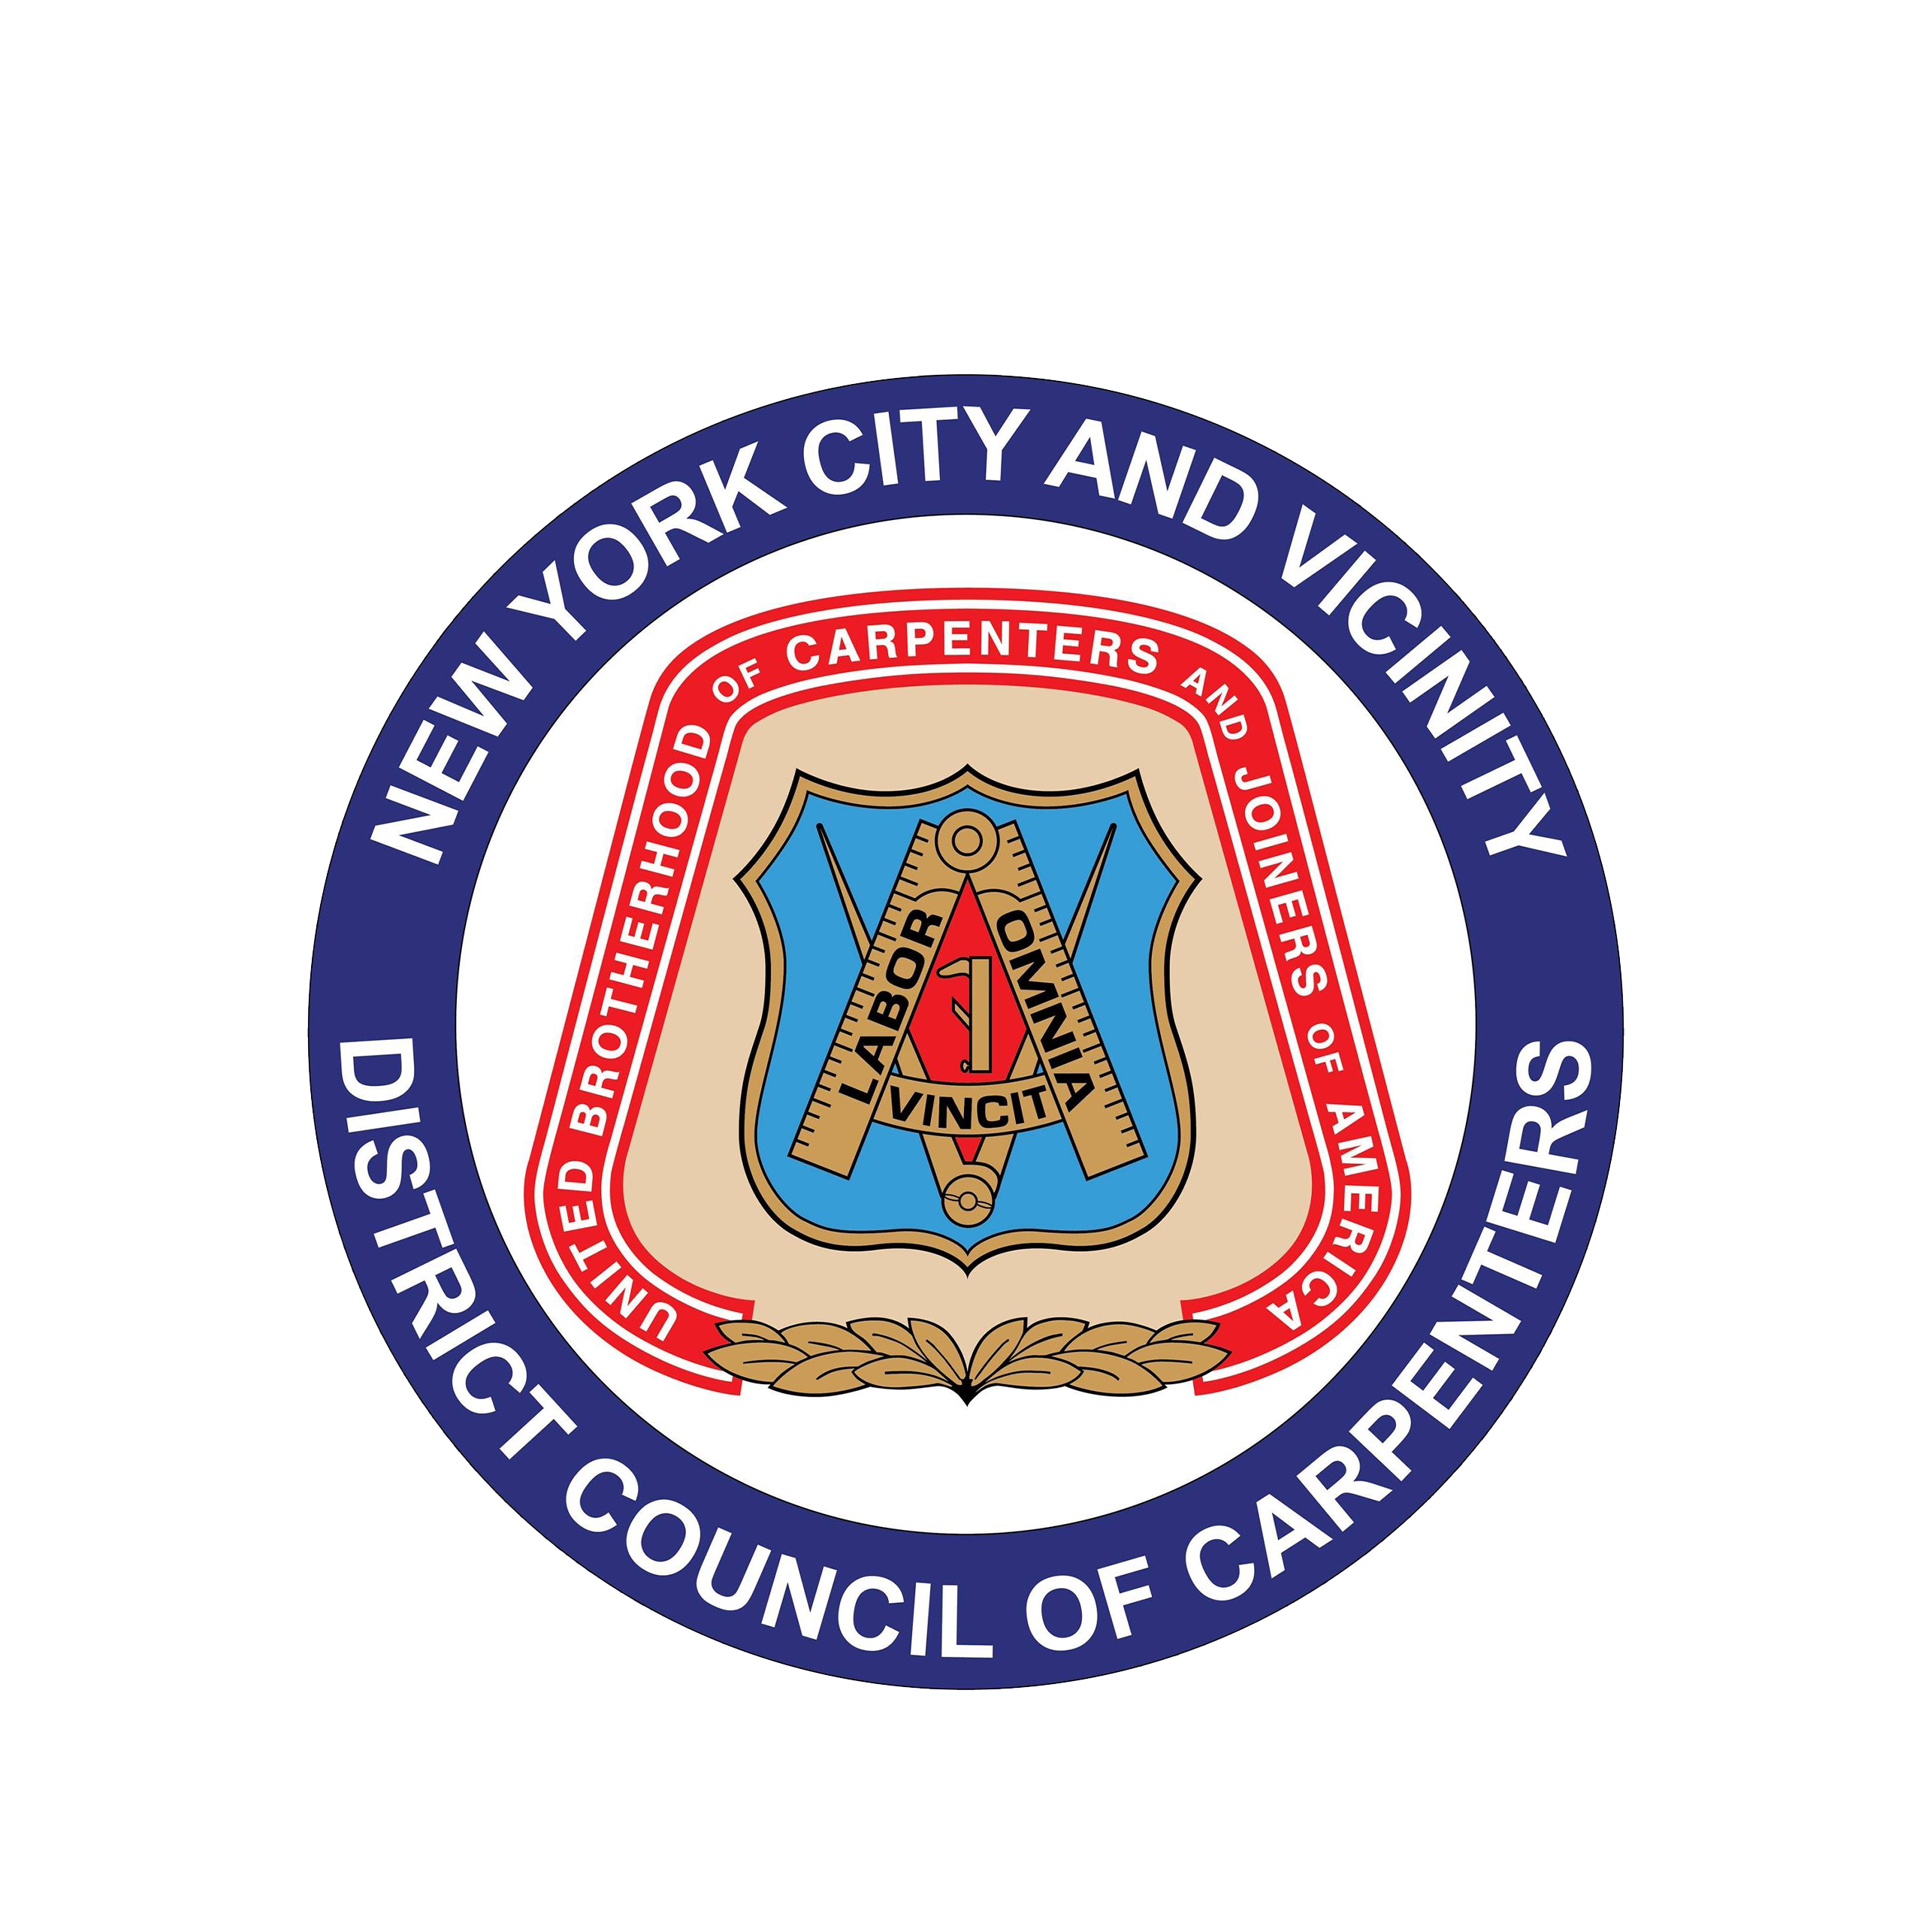 New York City & Vicinity District Council of Carpenters